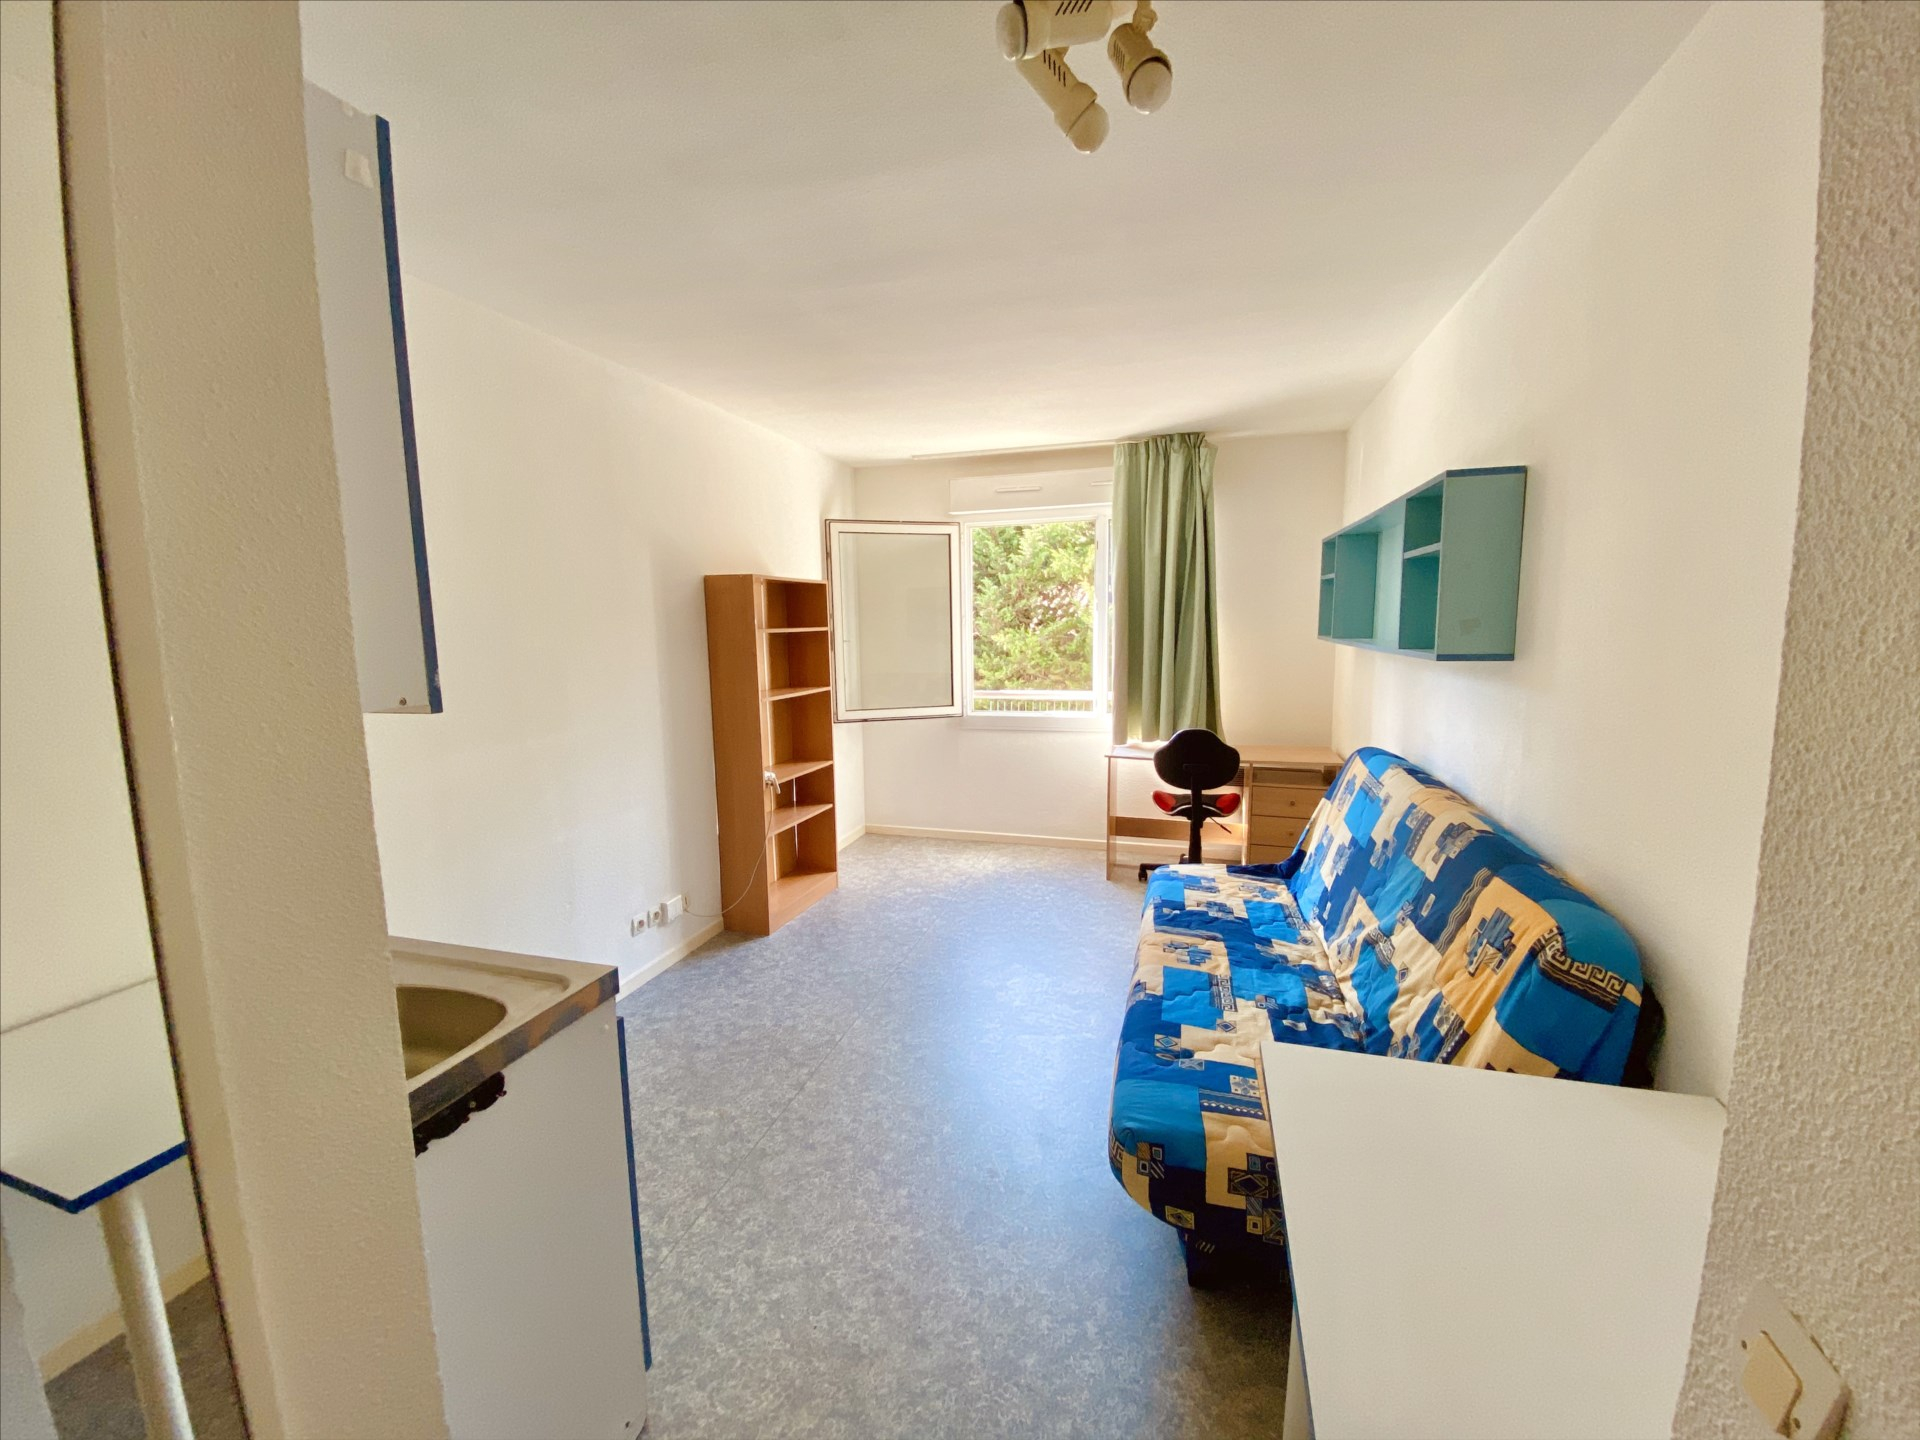 Location Appartement MONTPELLIER Mandat : 0047